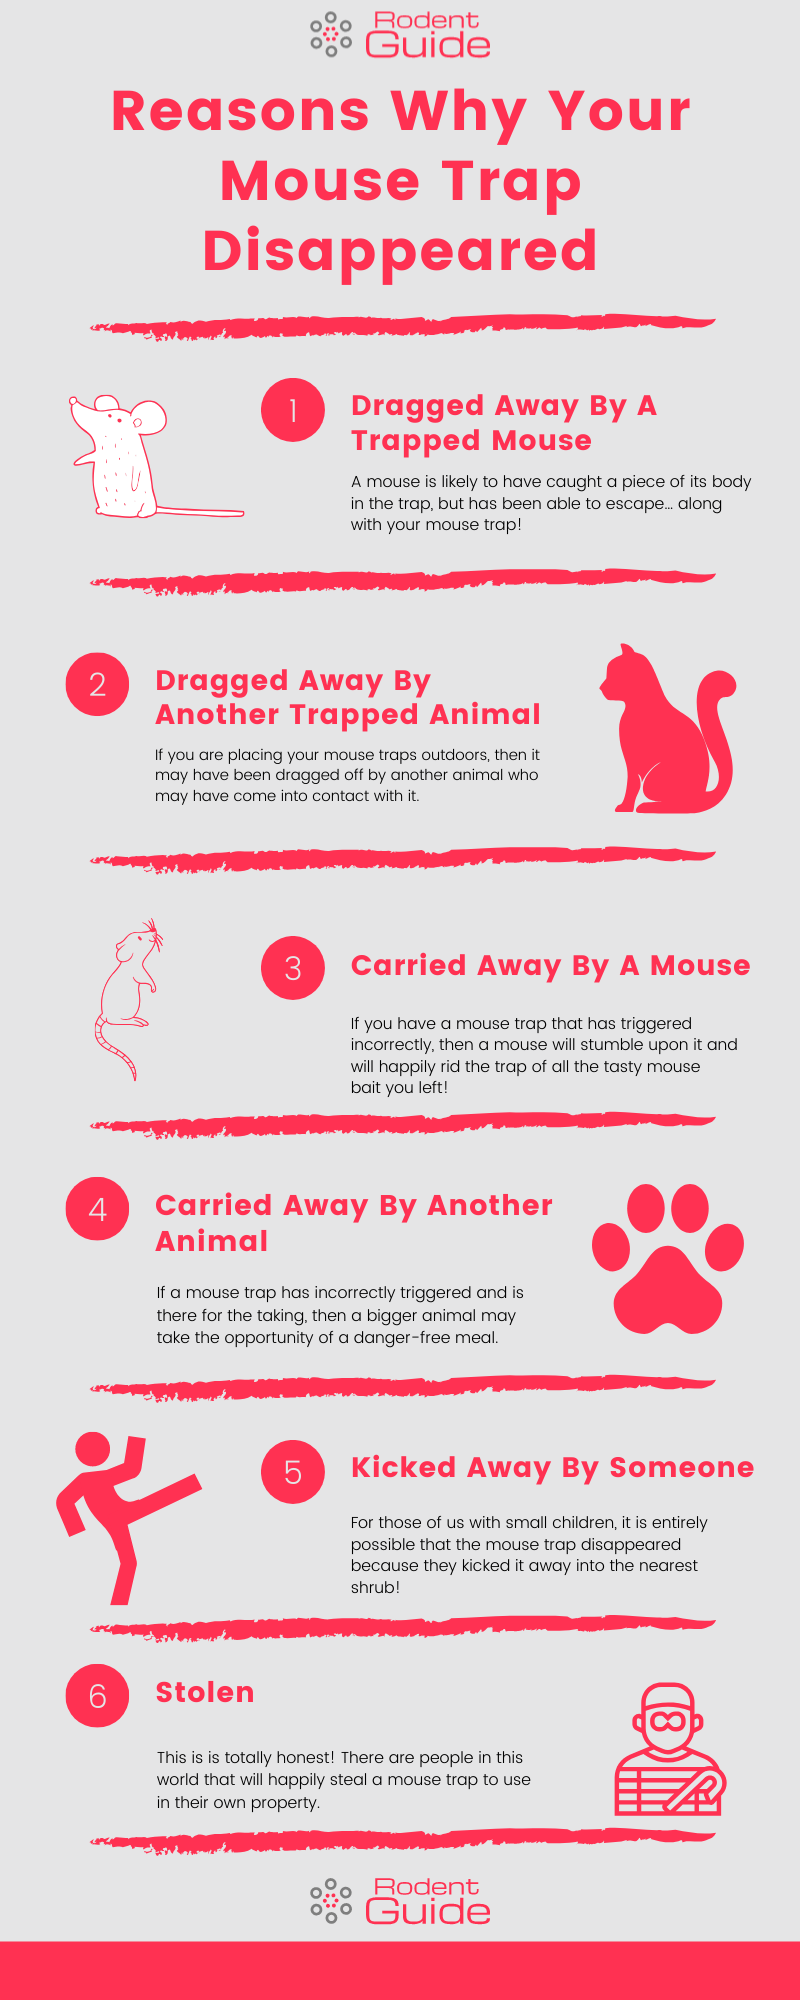 Reasons Why Your Mouse Trap Disappeared Infographic